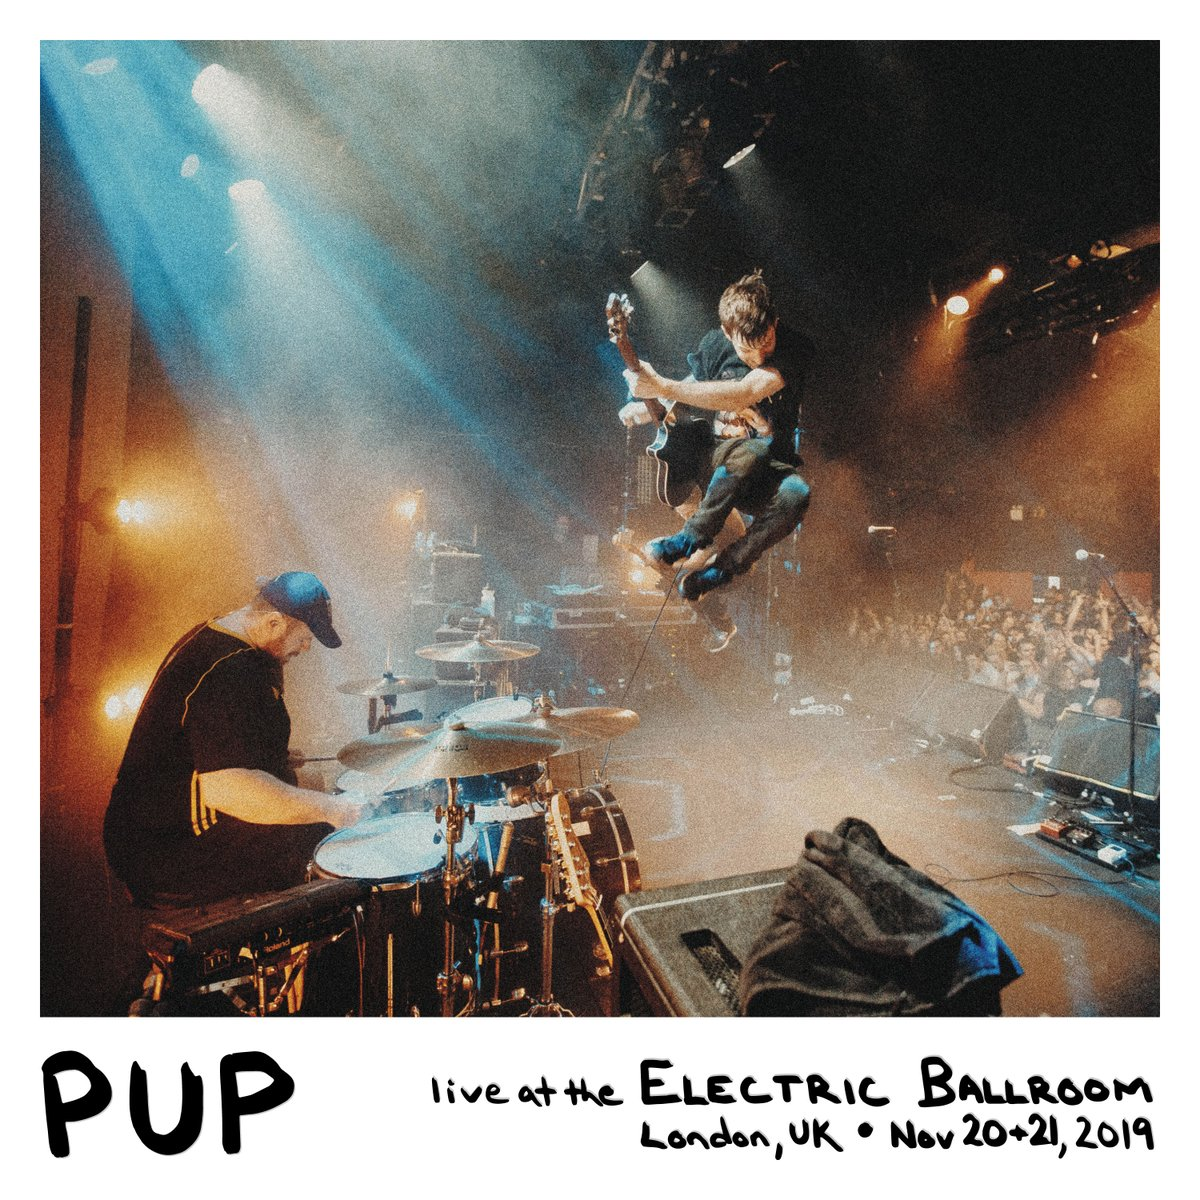 "TODAY ONLY ""PUP - LIVE AT THE ELECTRIC BALLROOM"" is available for download from @Bandcamp. Tomorrow it's gone. $10. 50% of proceeds to Critical Resistance (@C_Resistance) + Breakaway Addiction Services (@bas_toronto). https://t.co/49IcZTIR29 https://t.co/mnJXEq6TdD"